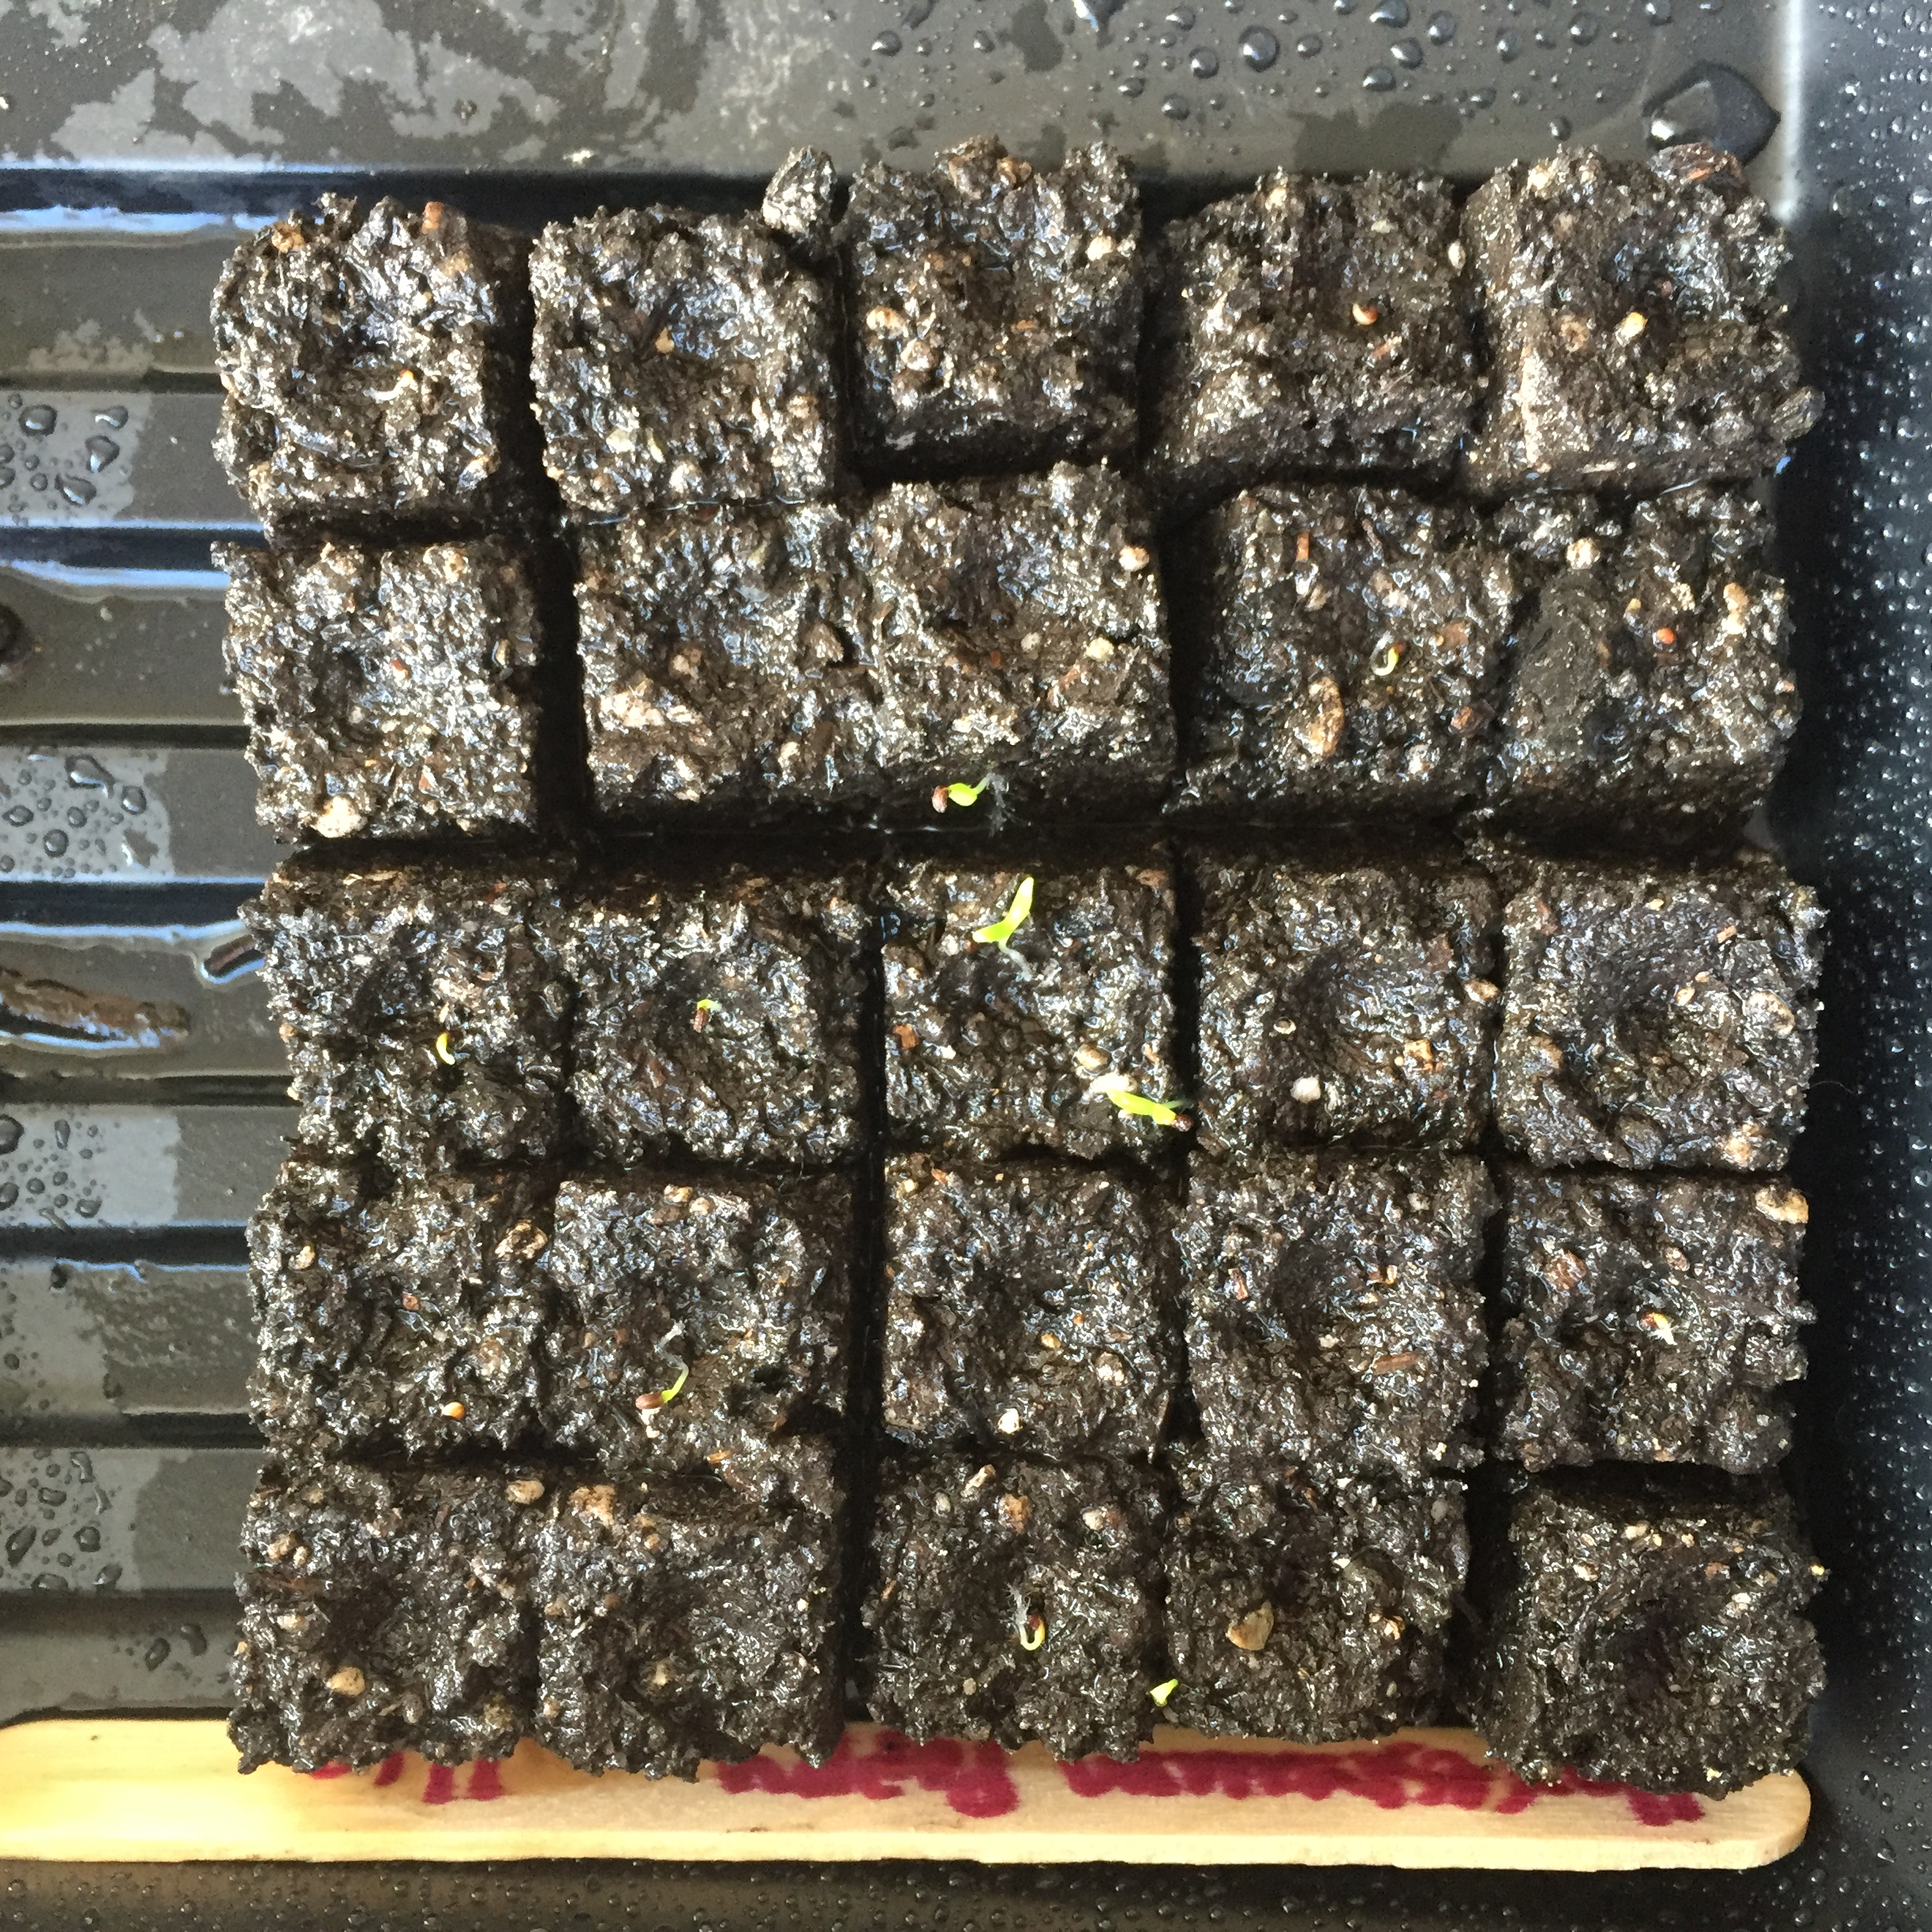 I'm starting successions of 25 Haremstraum poppies at a time. If you look closely you can see some early sprouts here.